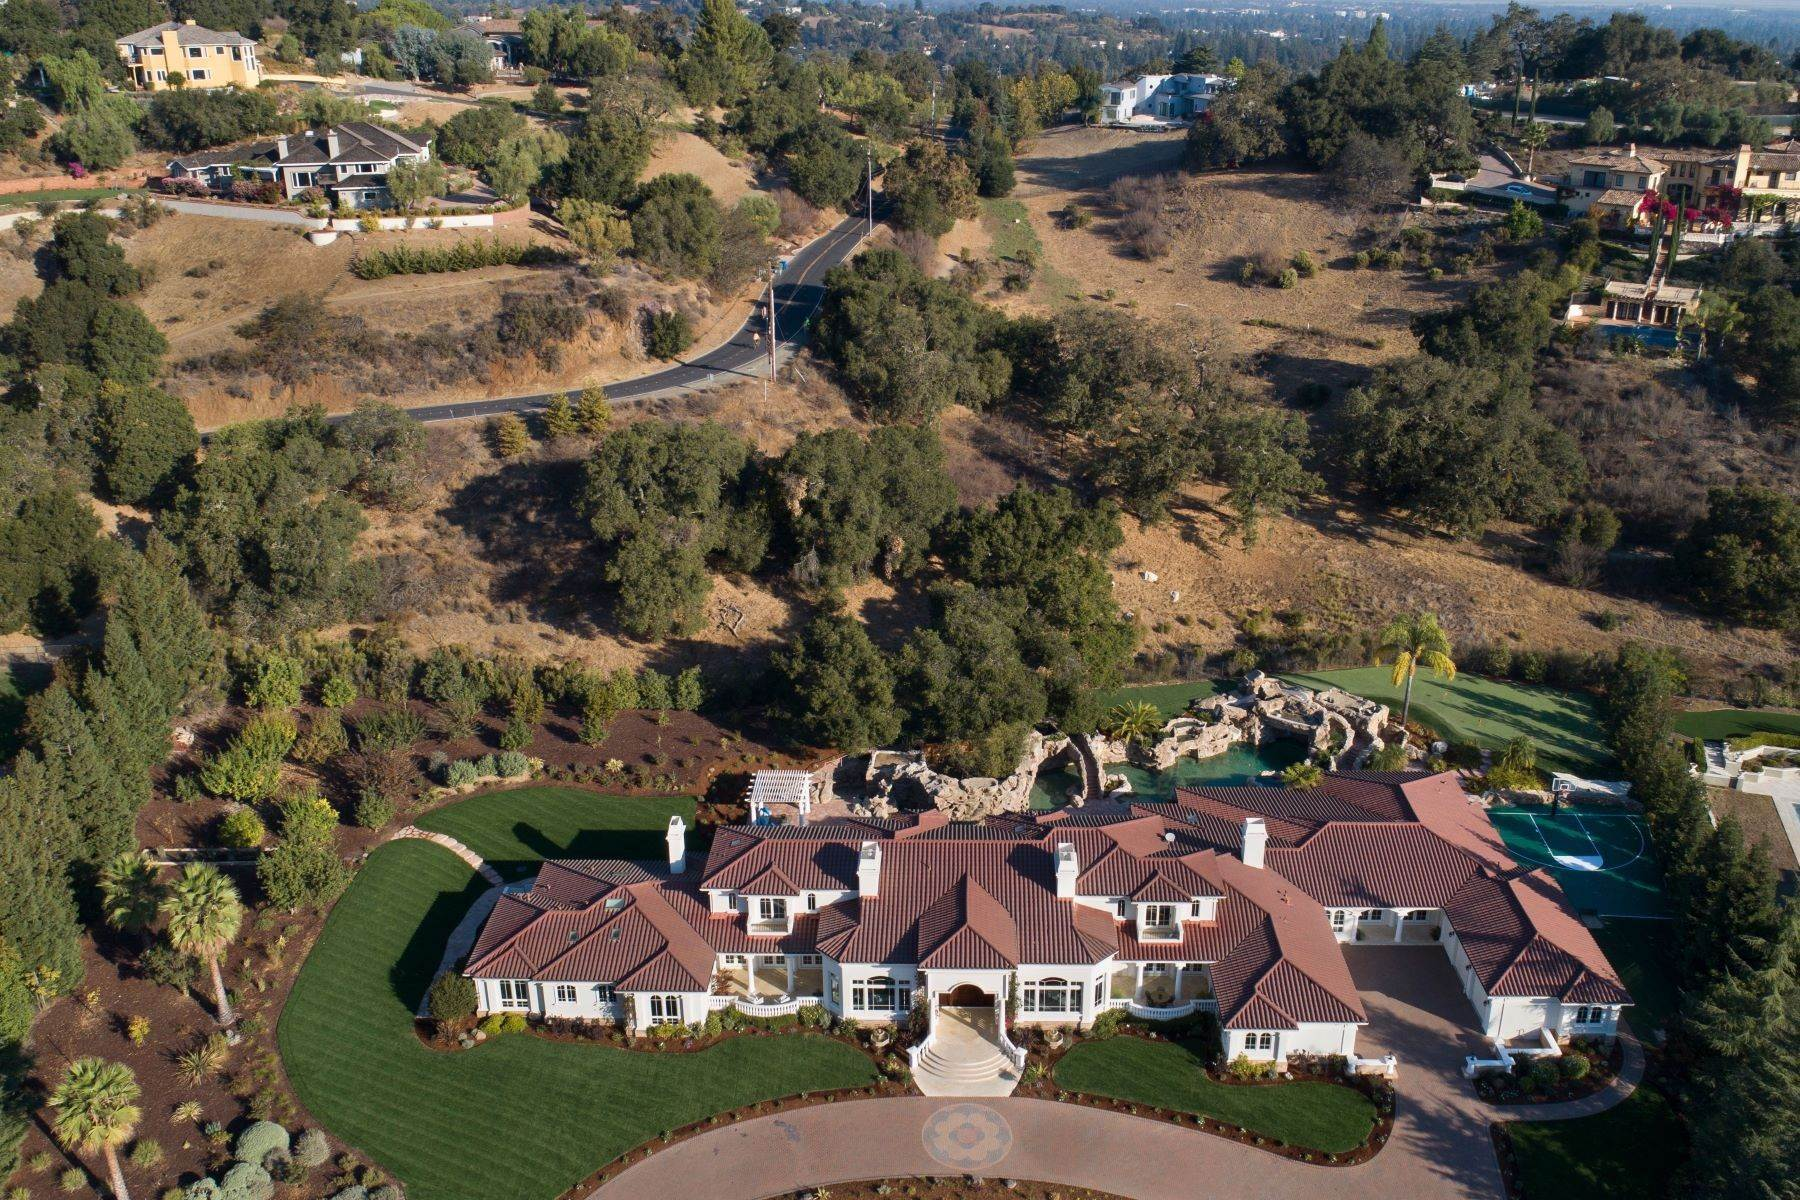 Single Family Homes for Sale at Sprawling Resort-Like Estate 12160 Kate Drive Los Altos Hills, California 94022 United States